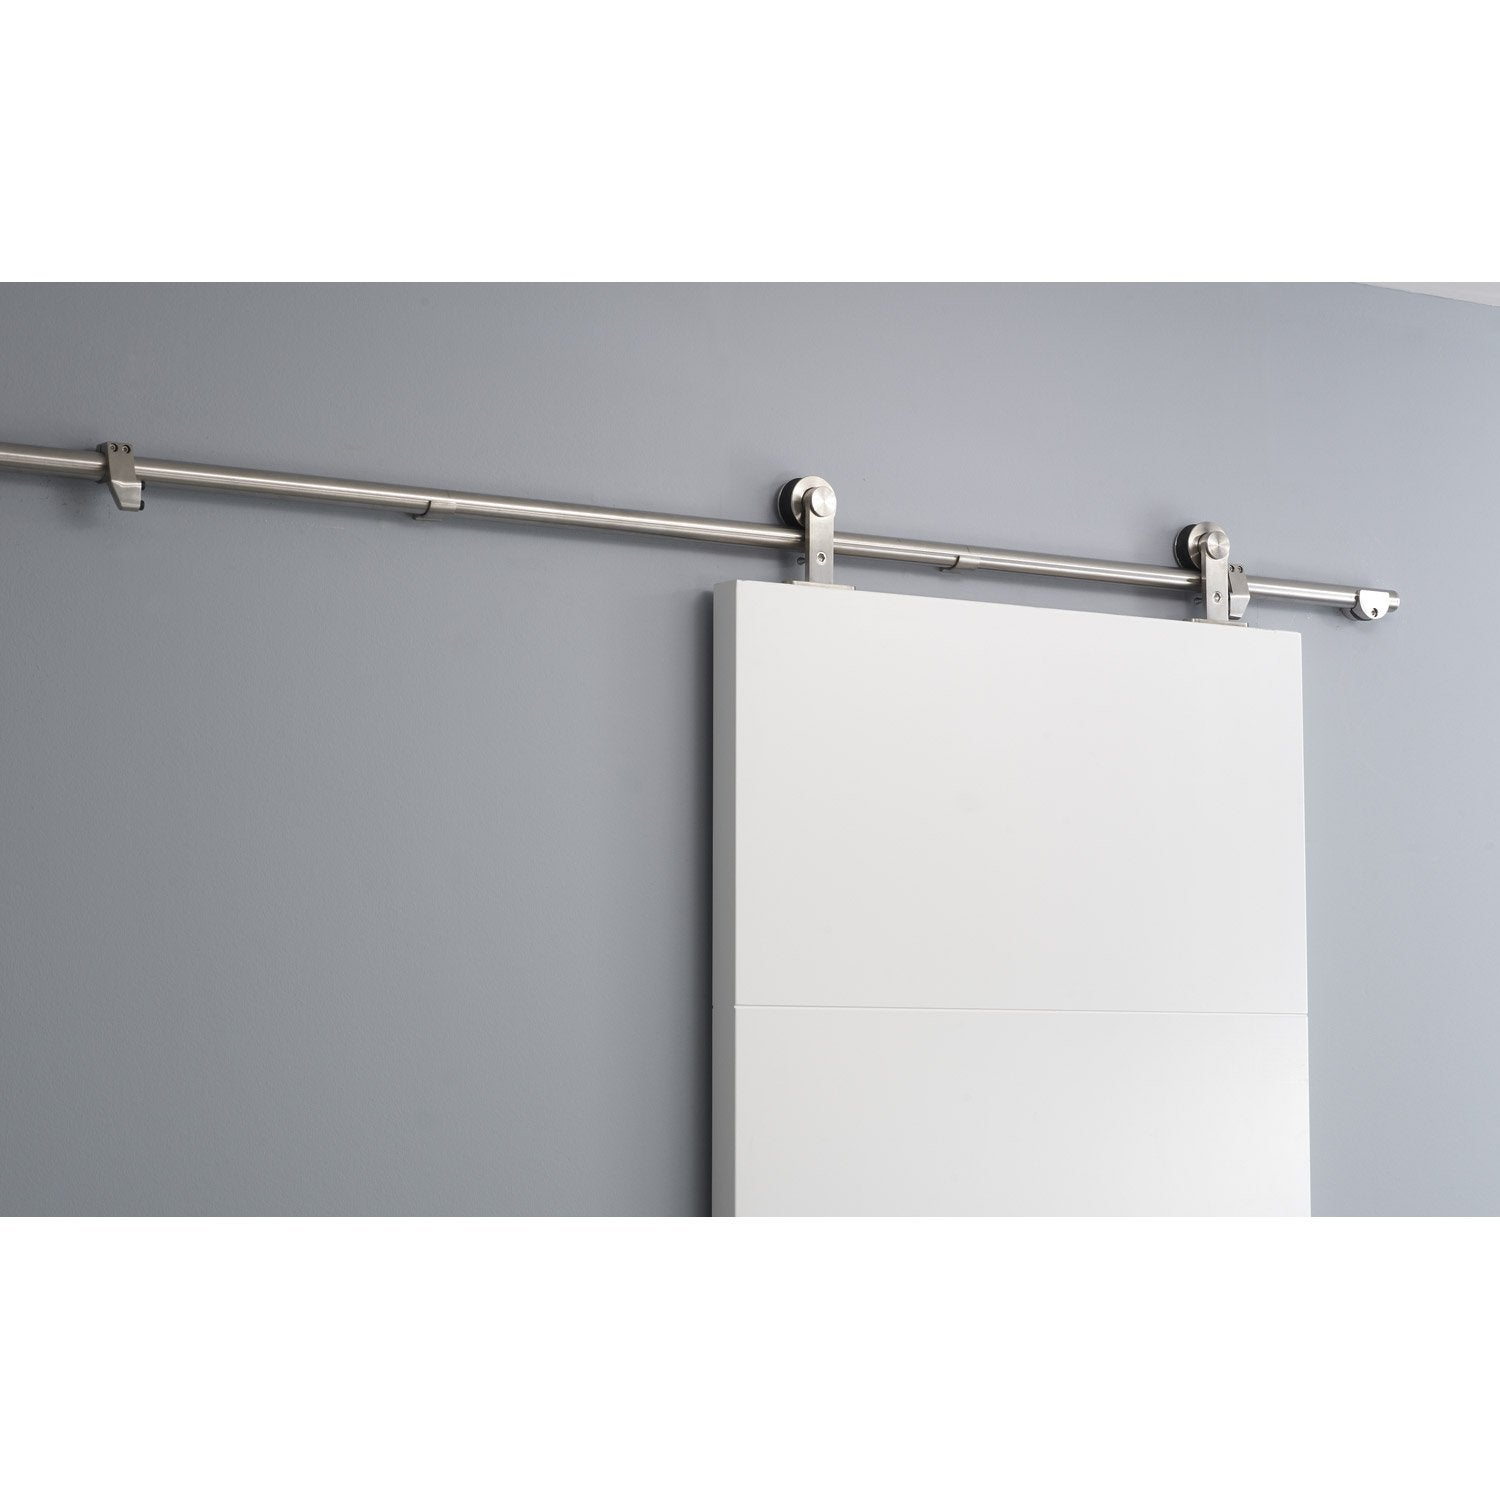 Rail coulissant techno design pour porte de largeur 83 cm maximum leroy me - Fixation rail porte coulissante ...